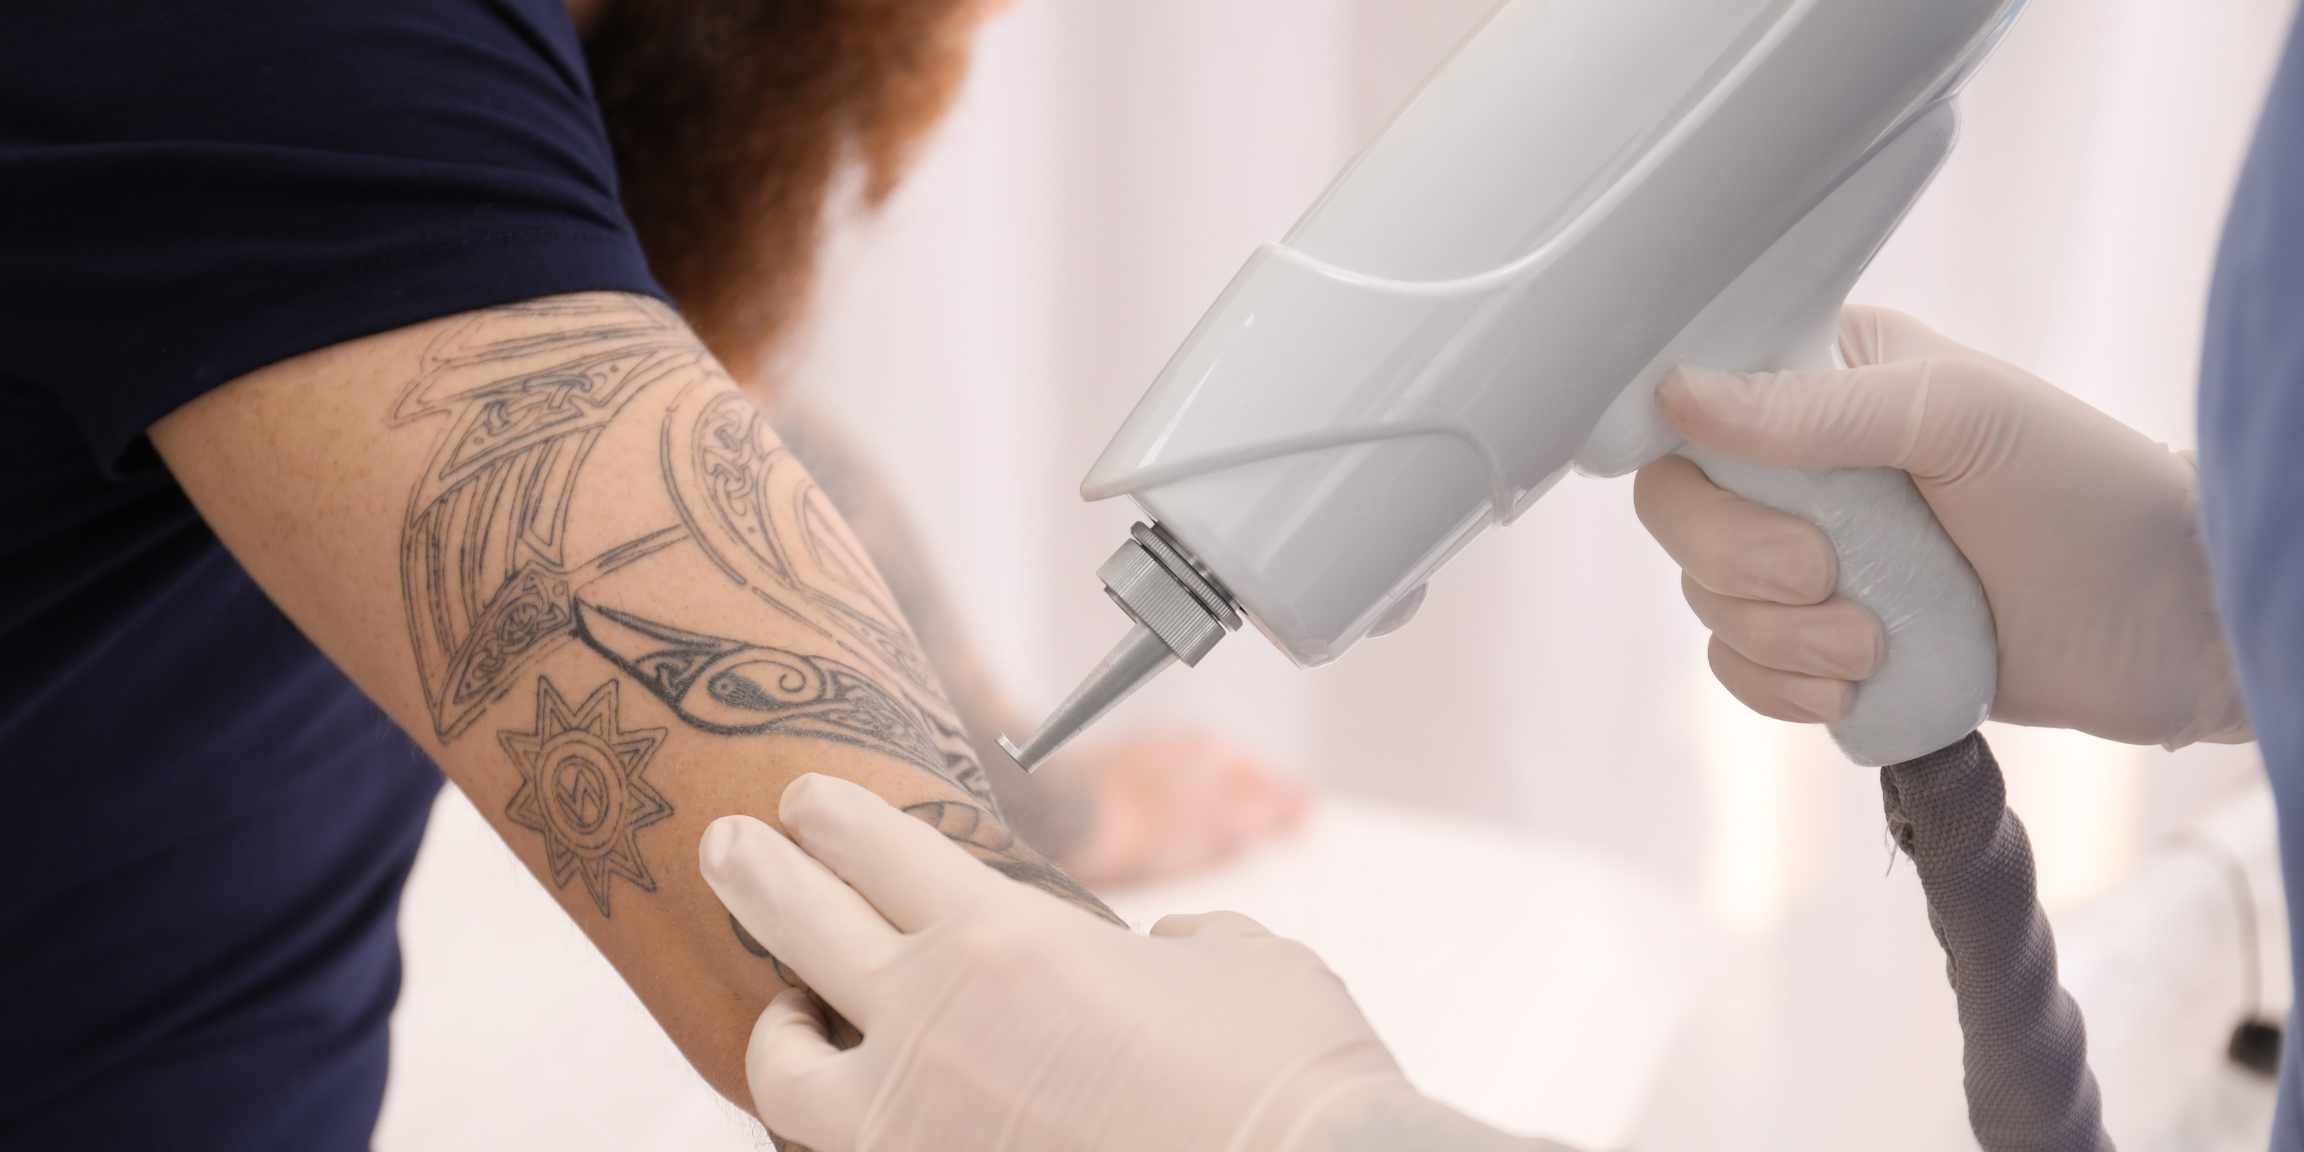 person with arm tattoo getting laser tattoo removal treatment